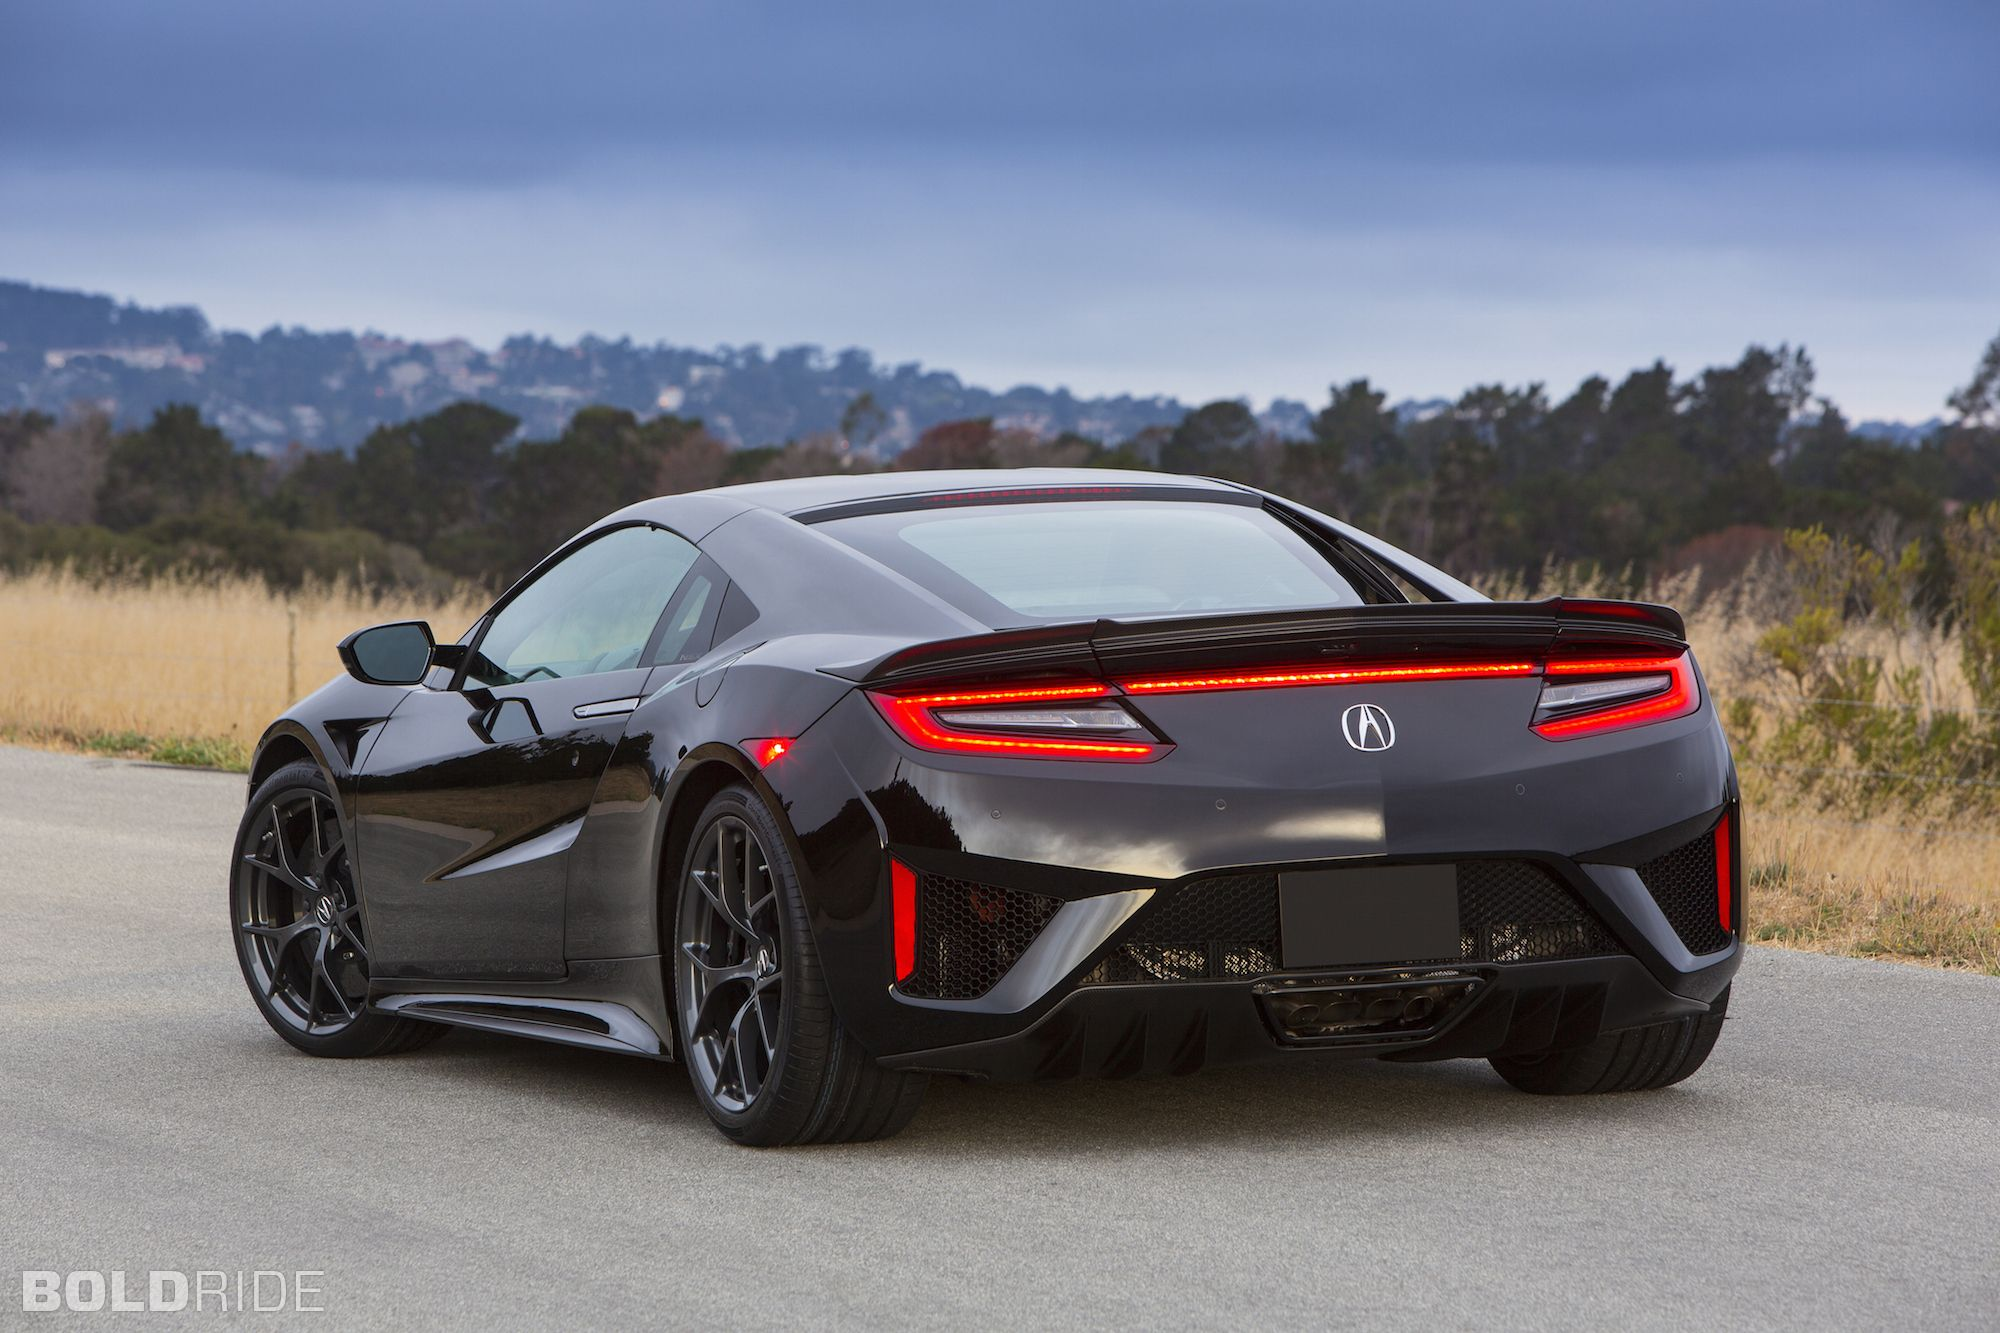 2016 Acura Nsx Images Pictures And Videos